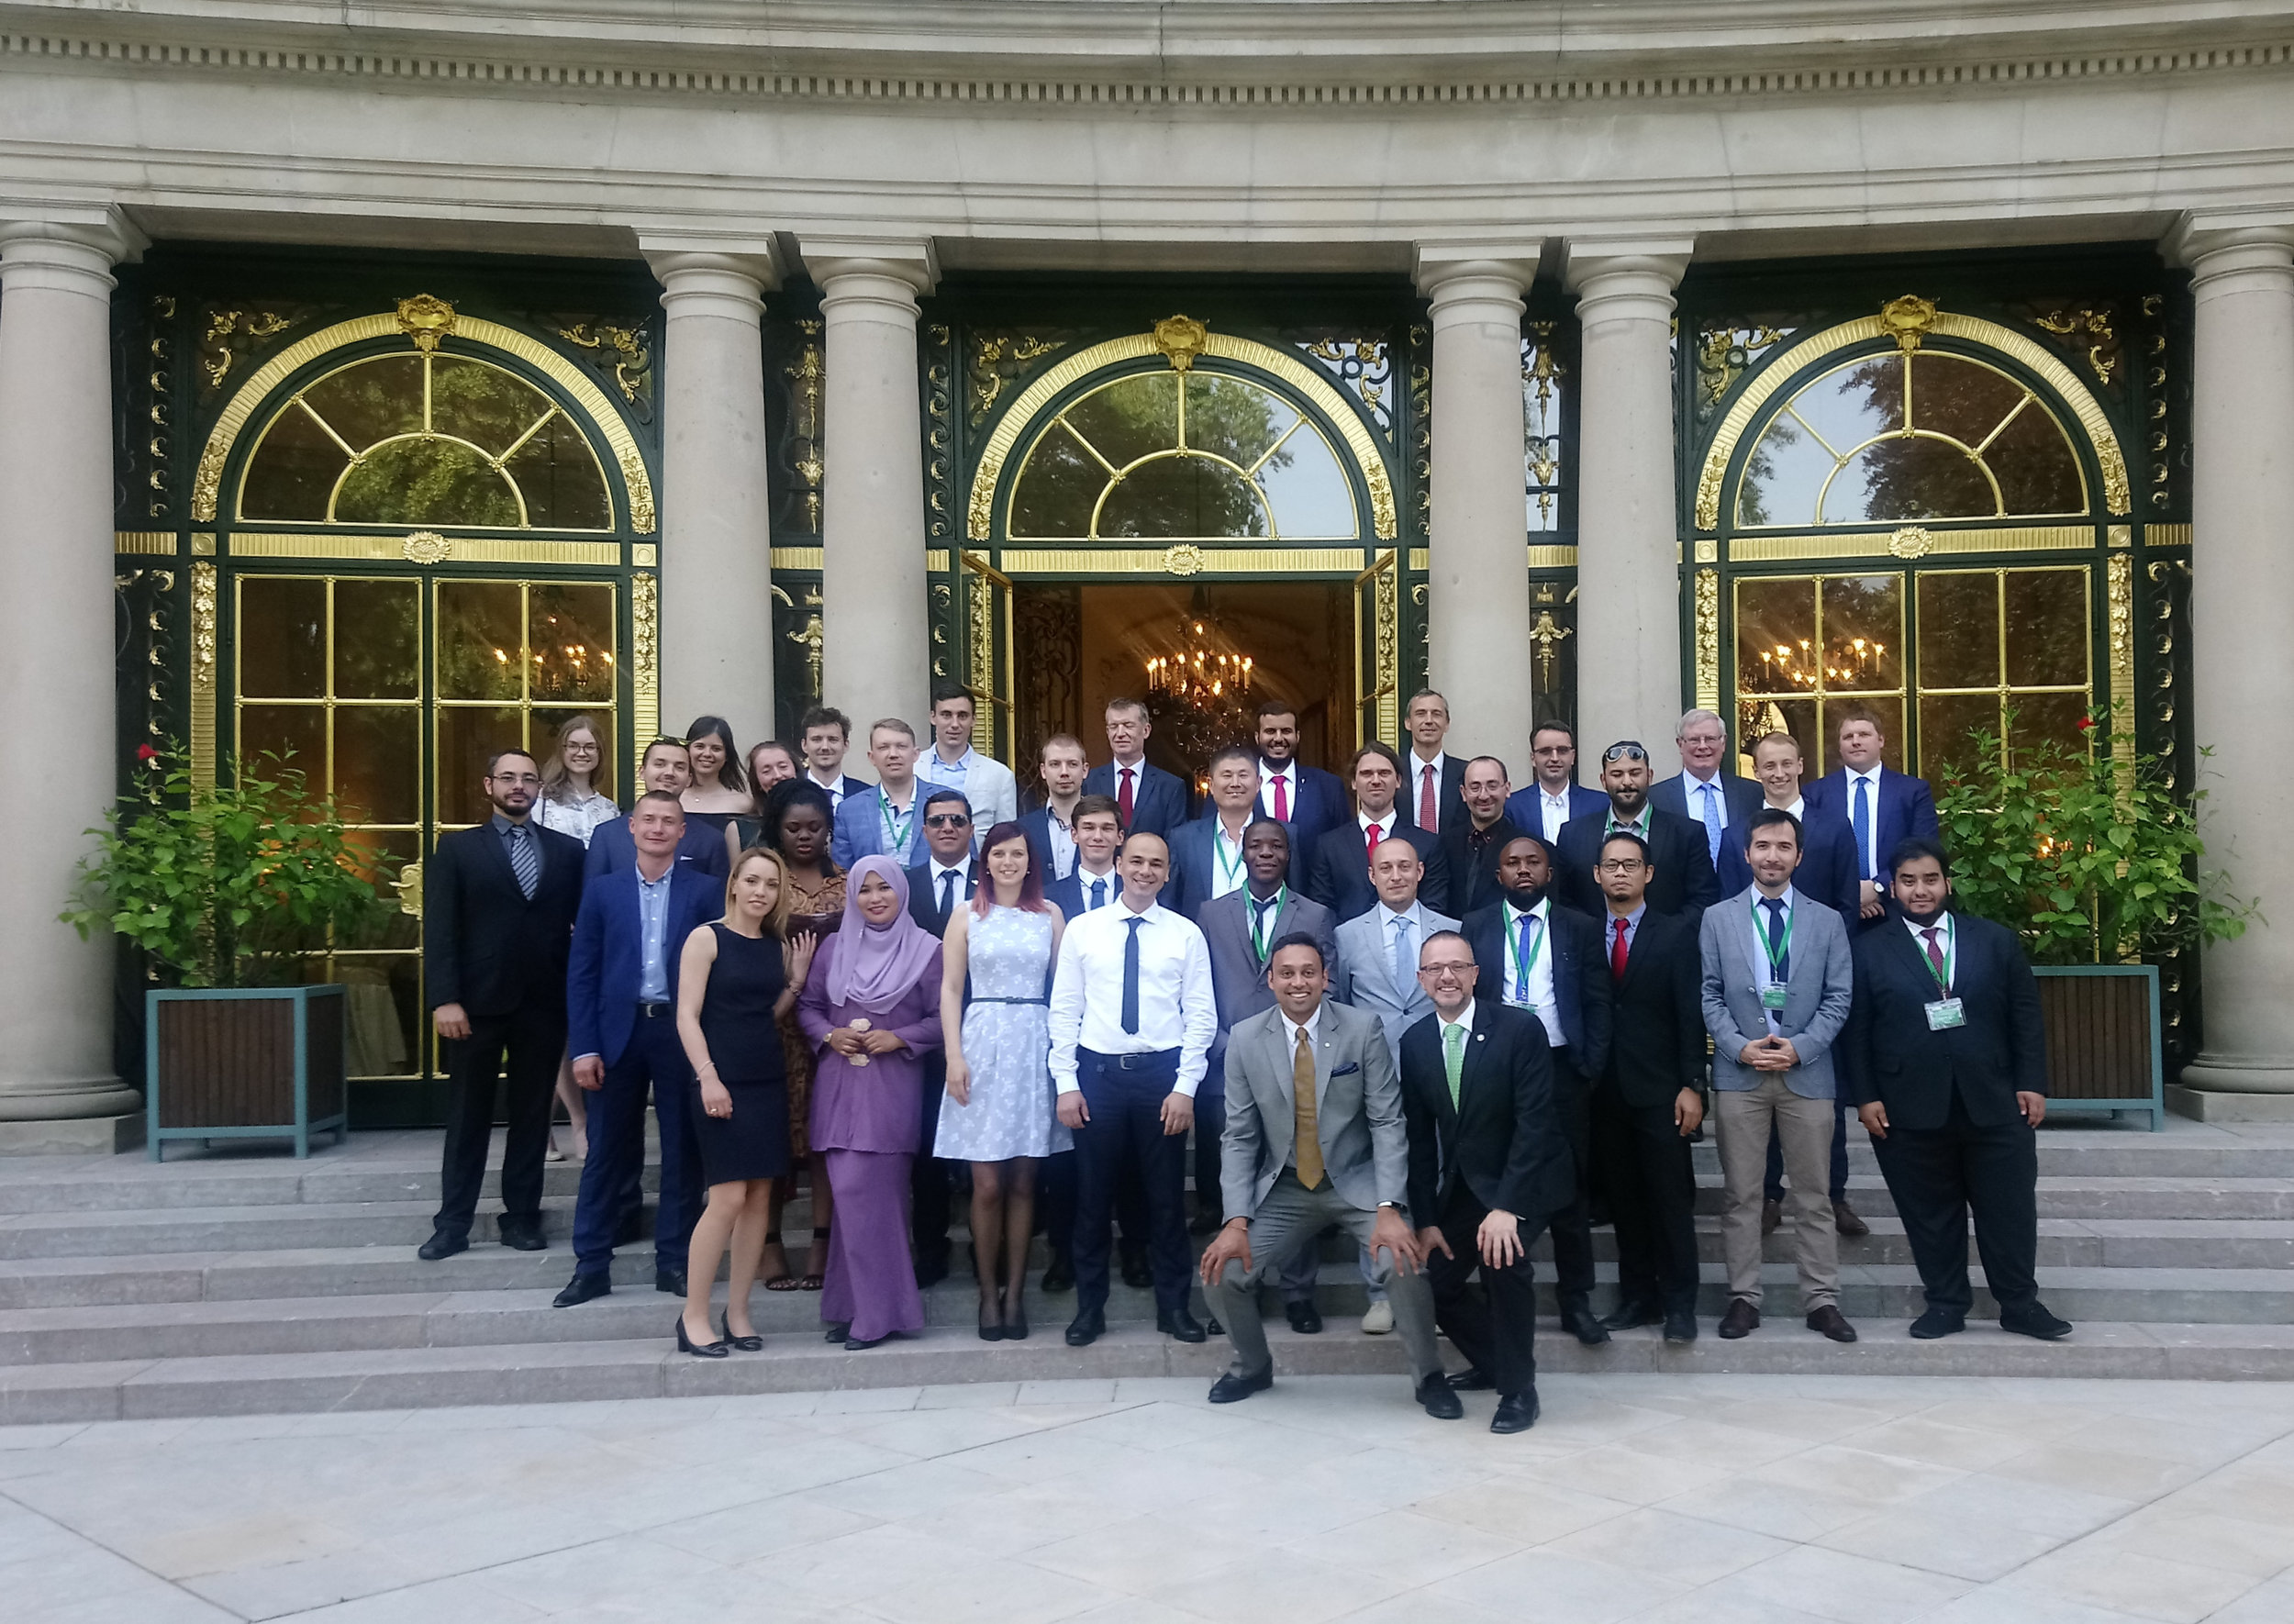 The farewell event at the US Ambassador's Residence